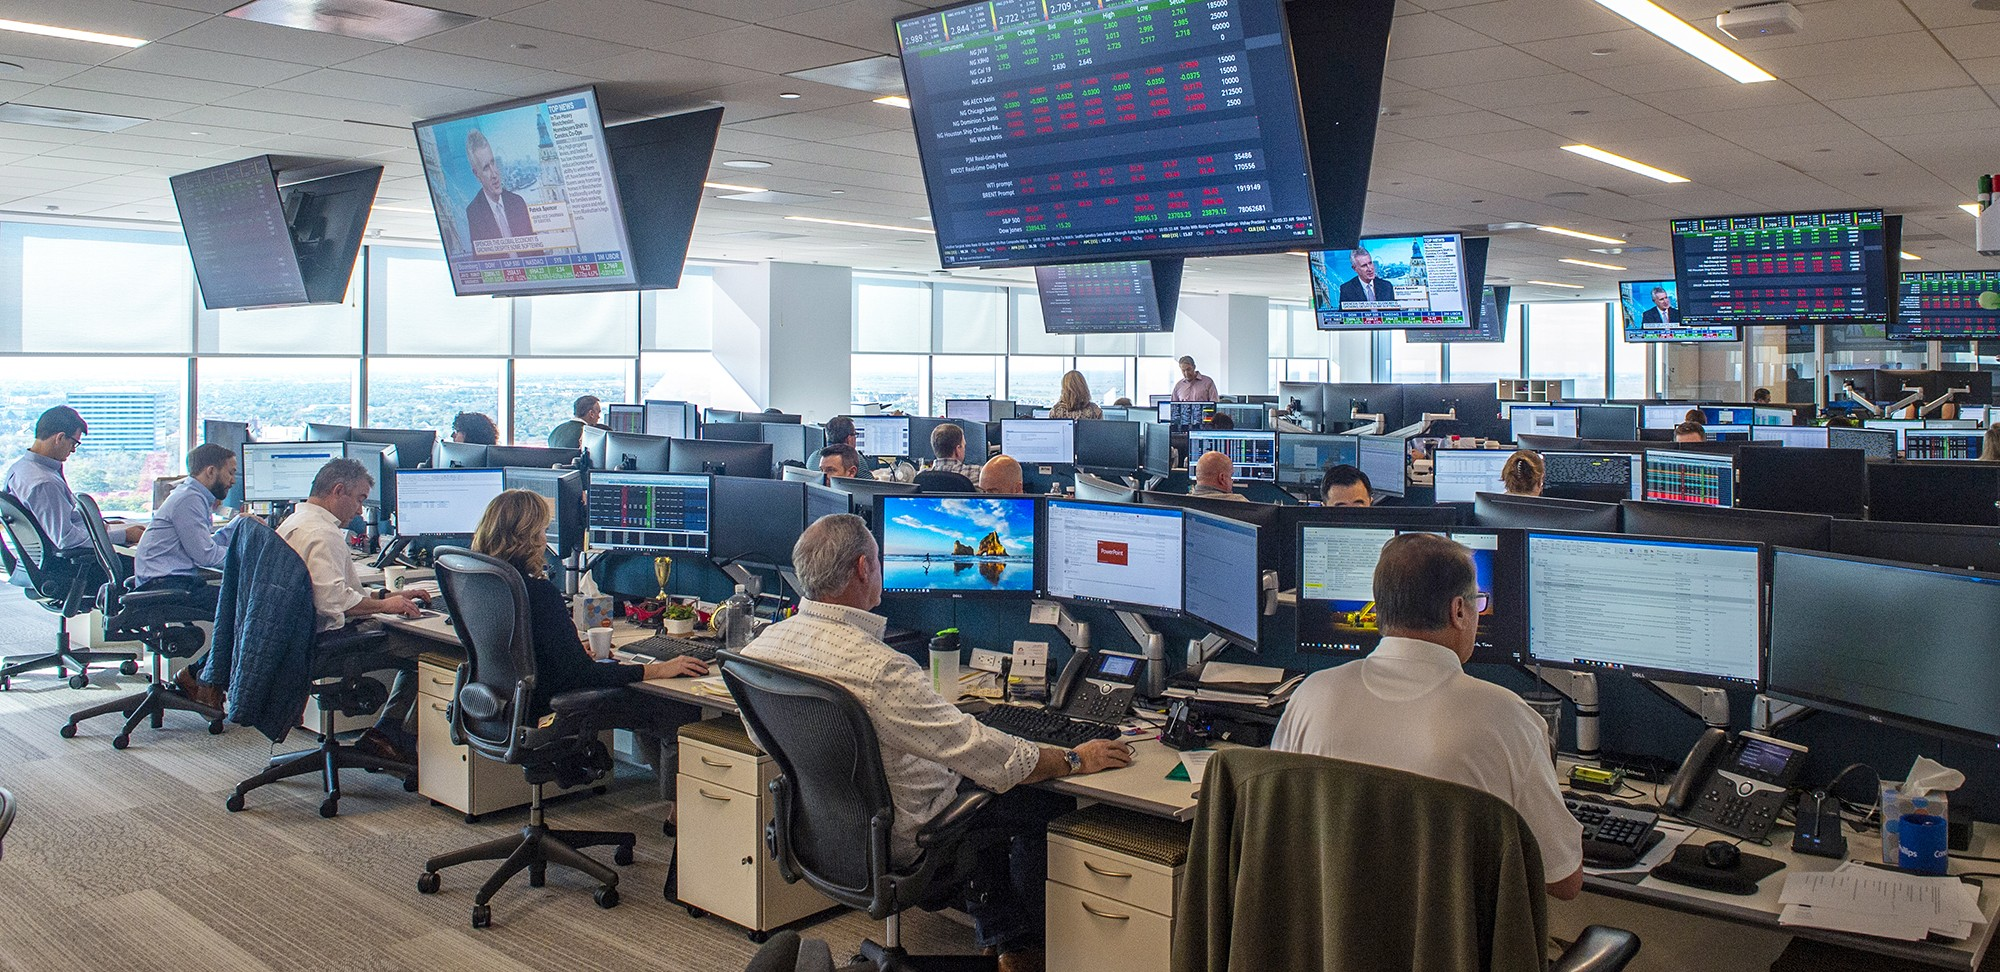 Commercial floor - room with workers at computers and ceiling monitors